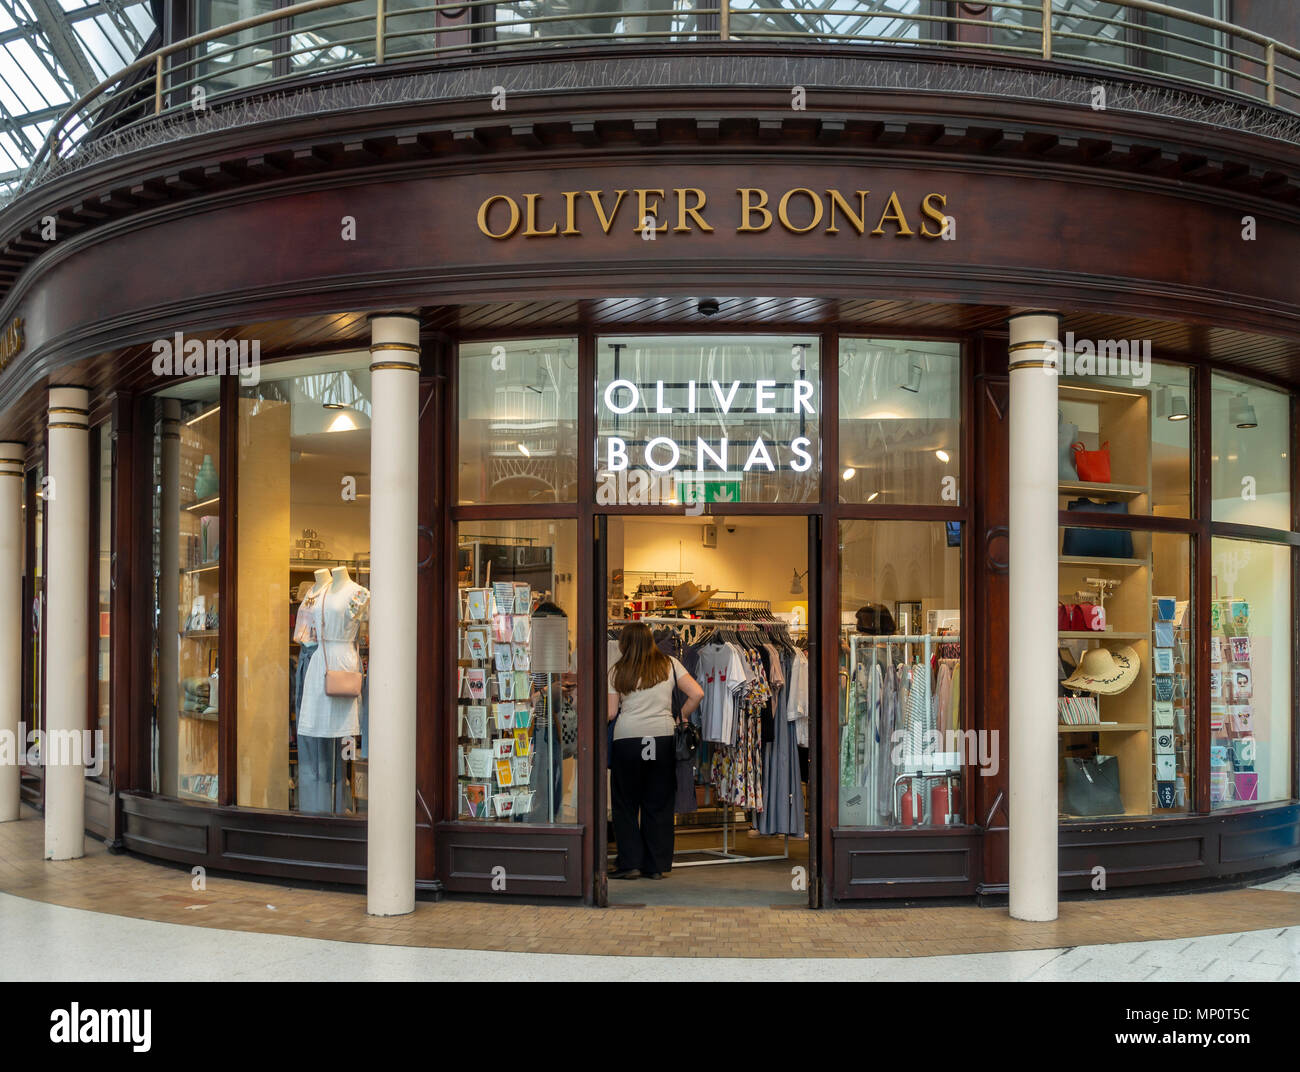 Customers and the frontage of the Oliver Bonas outlet in Glasgow Central Station, Scotland, UK. - Stock Image